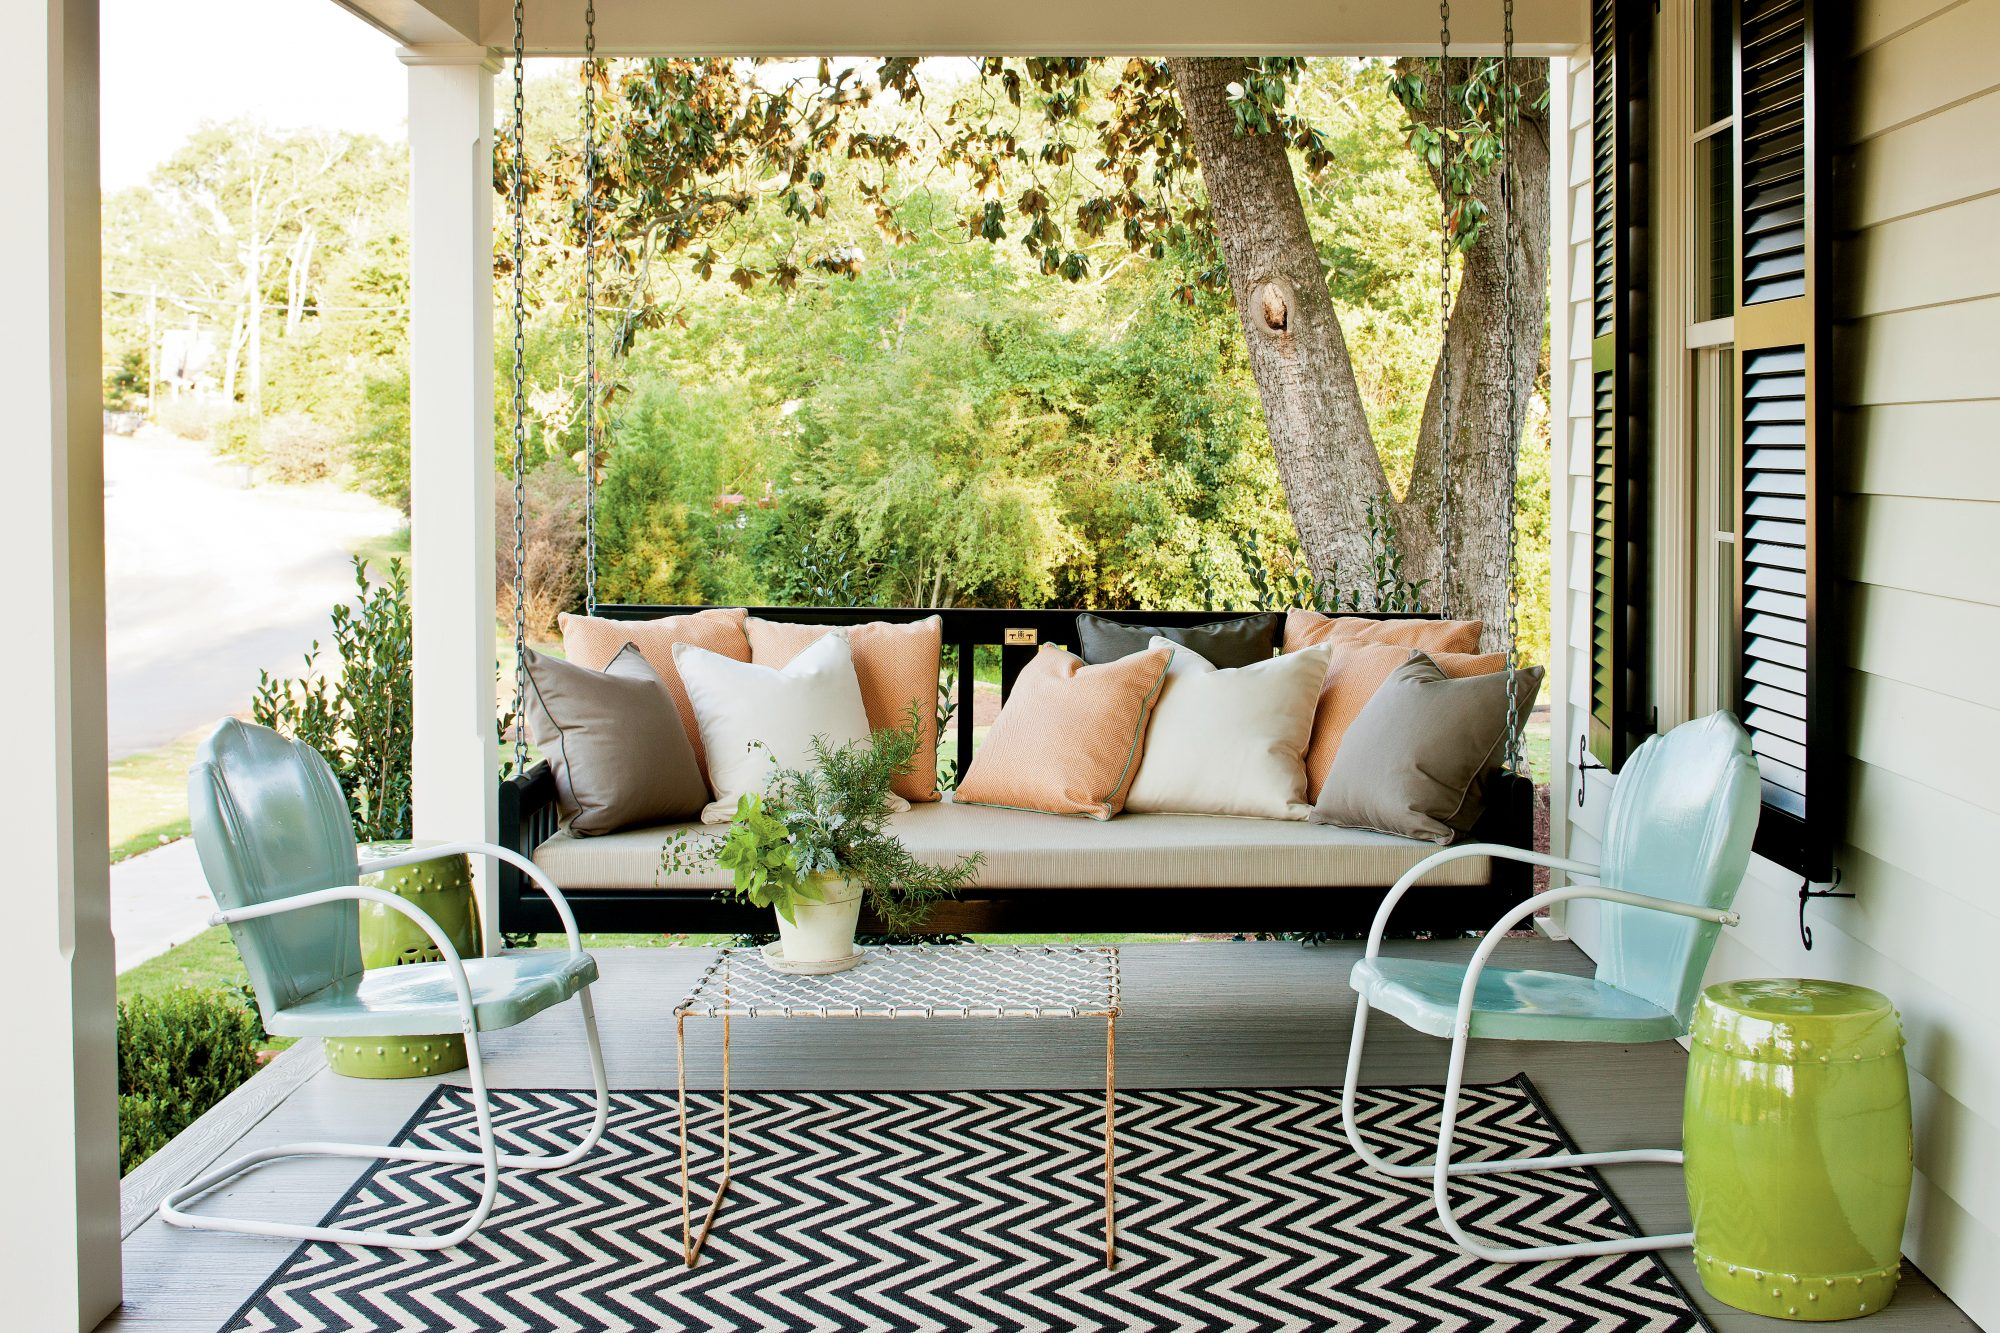 6 Creative Ways to Make the Most of Small Front Porch